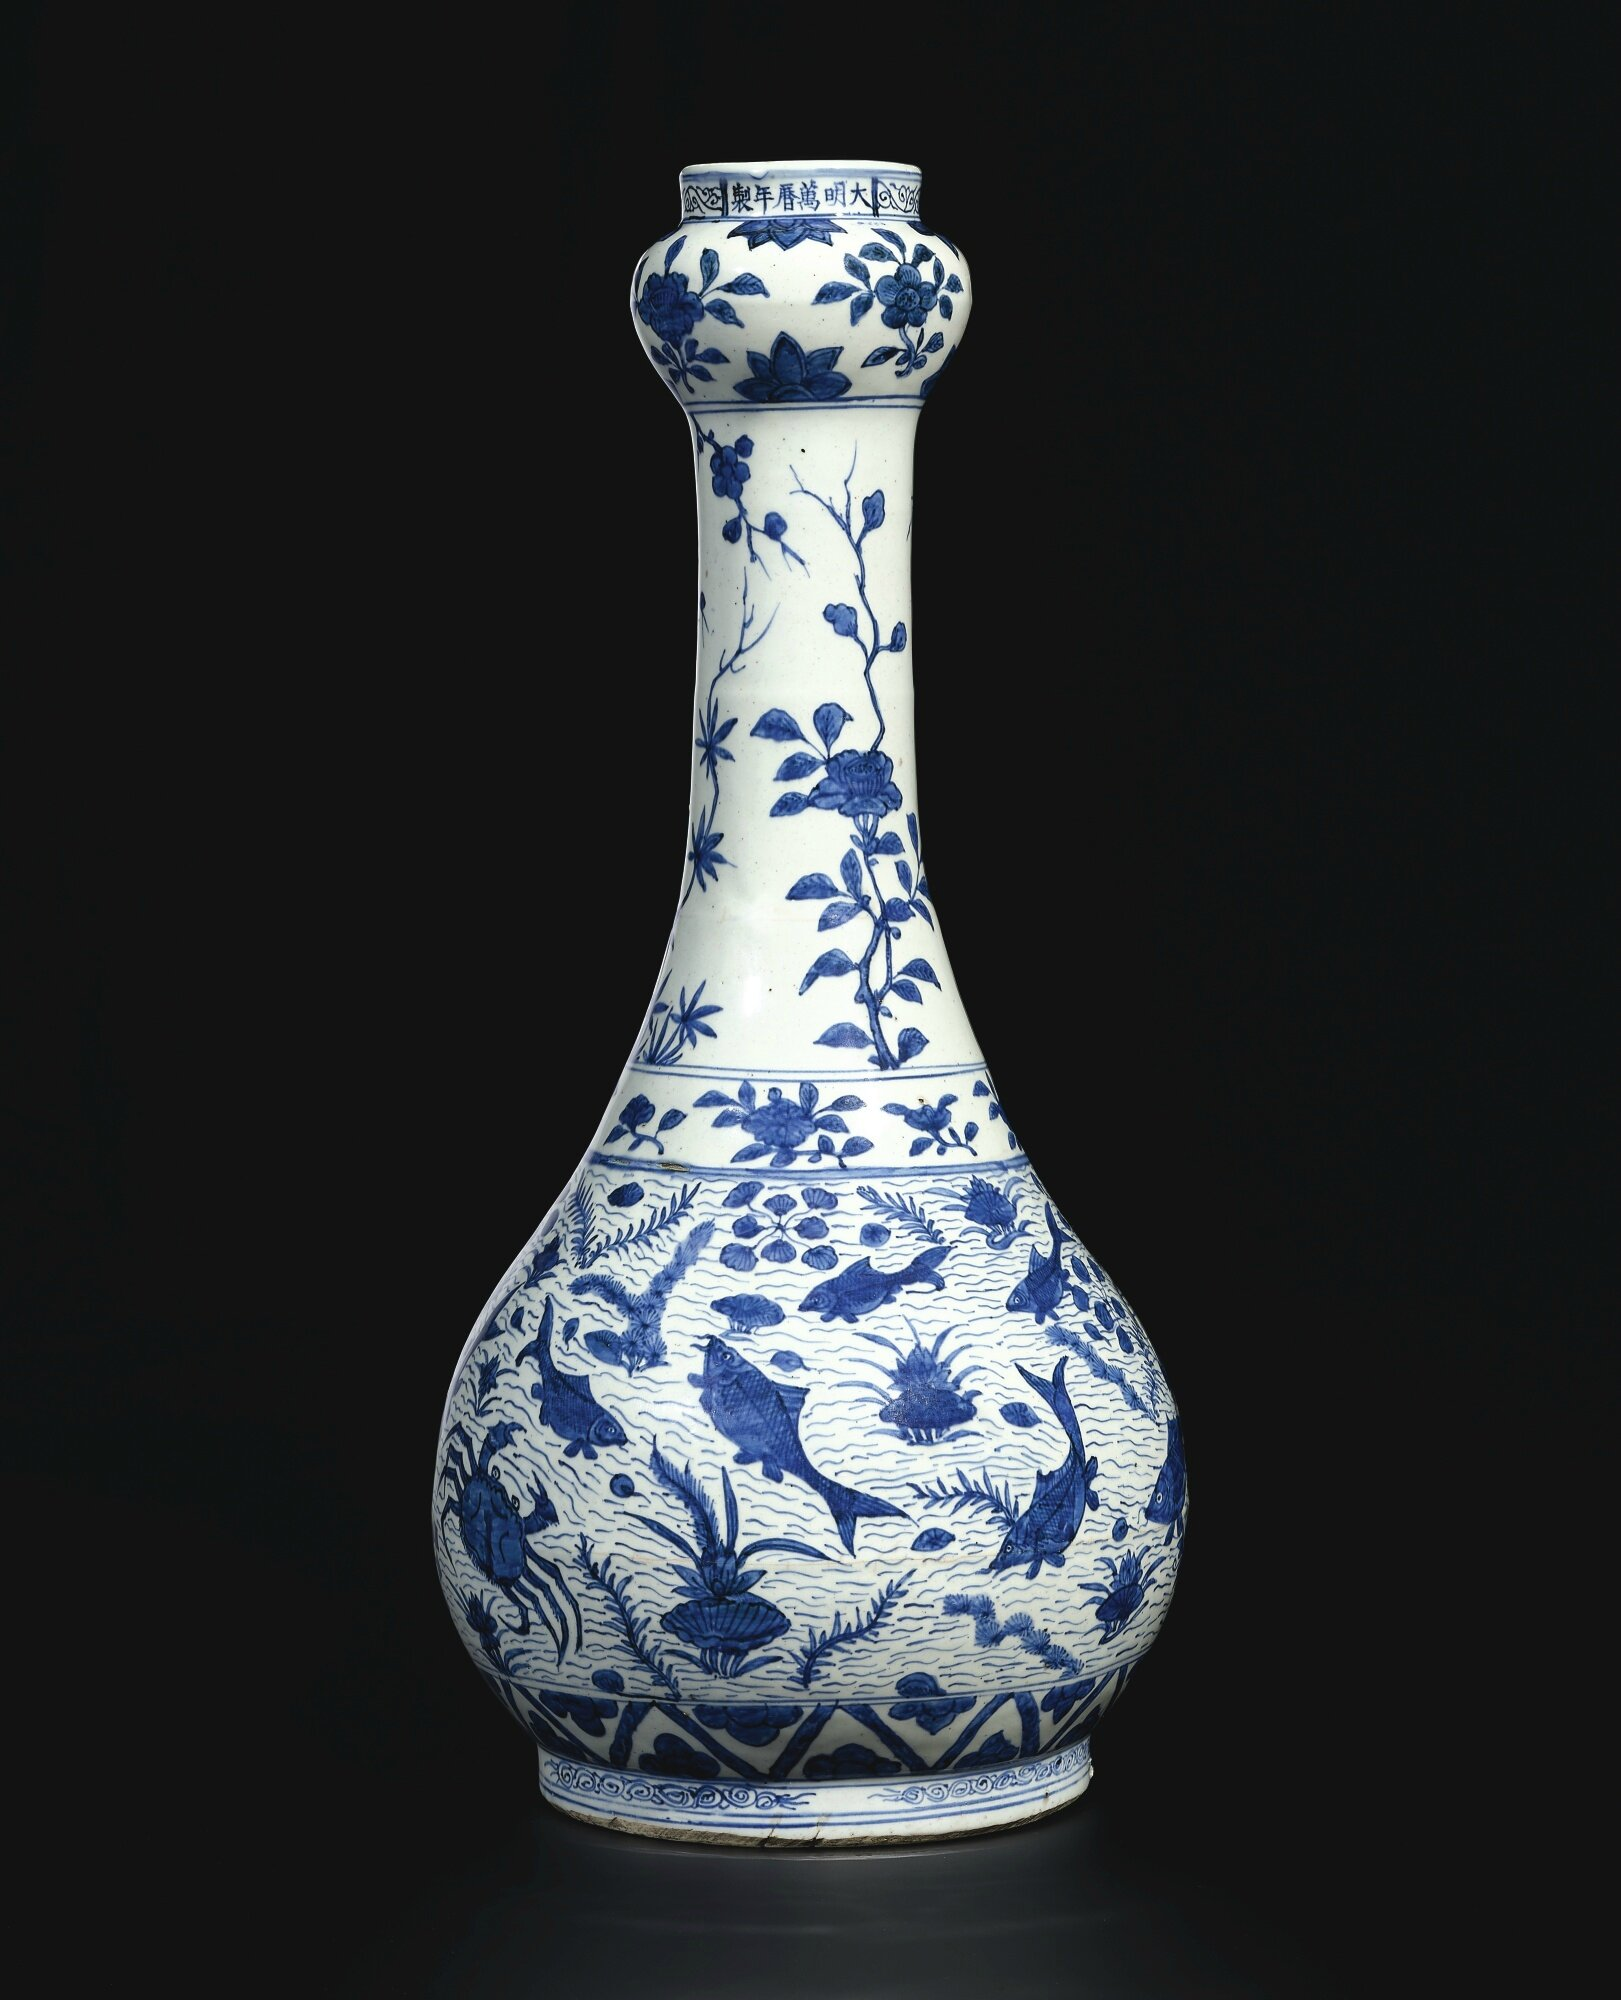 A large and rare blue and white garlic-mouth bottle vase, Mark and period of Wanli (1573-1619)